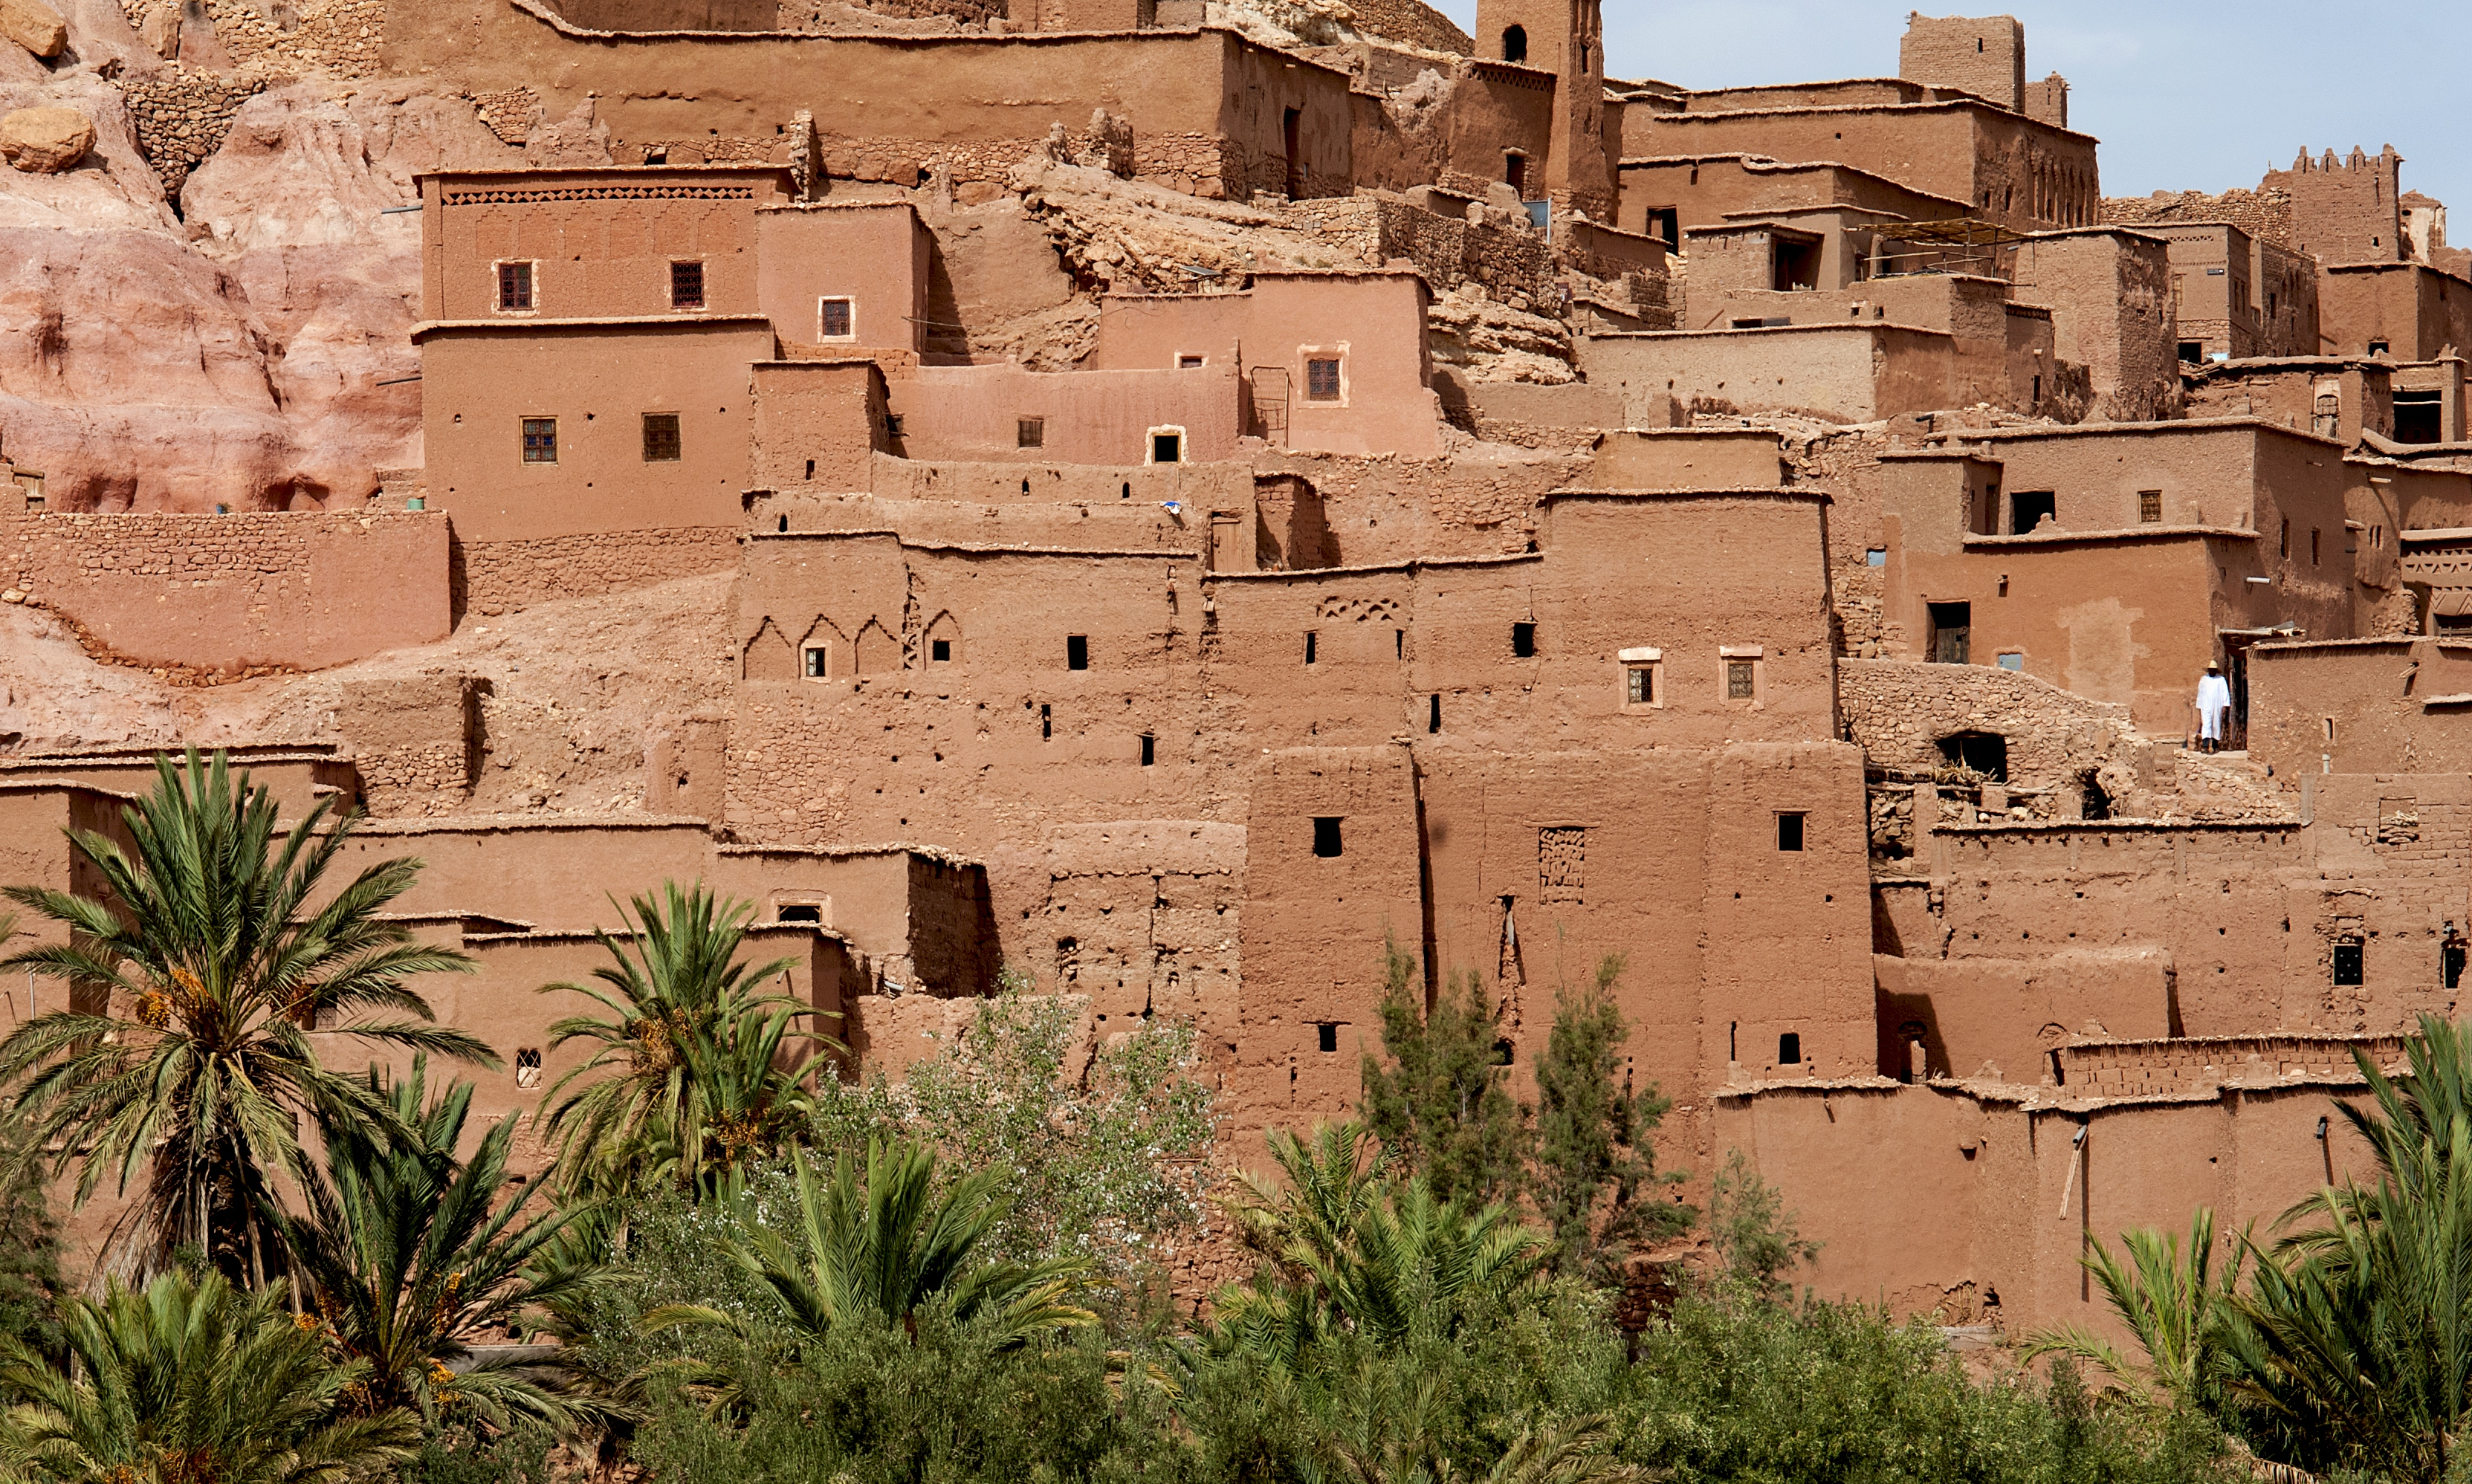 Ait Benhaddou and figure in white